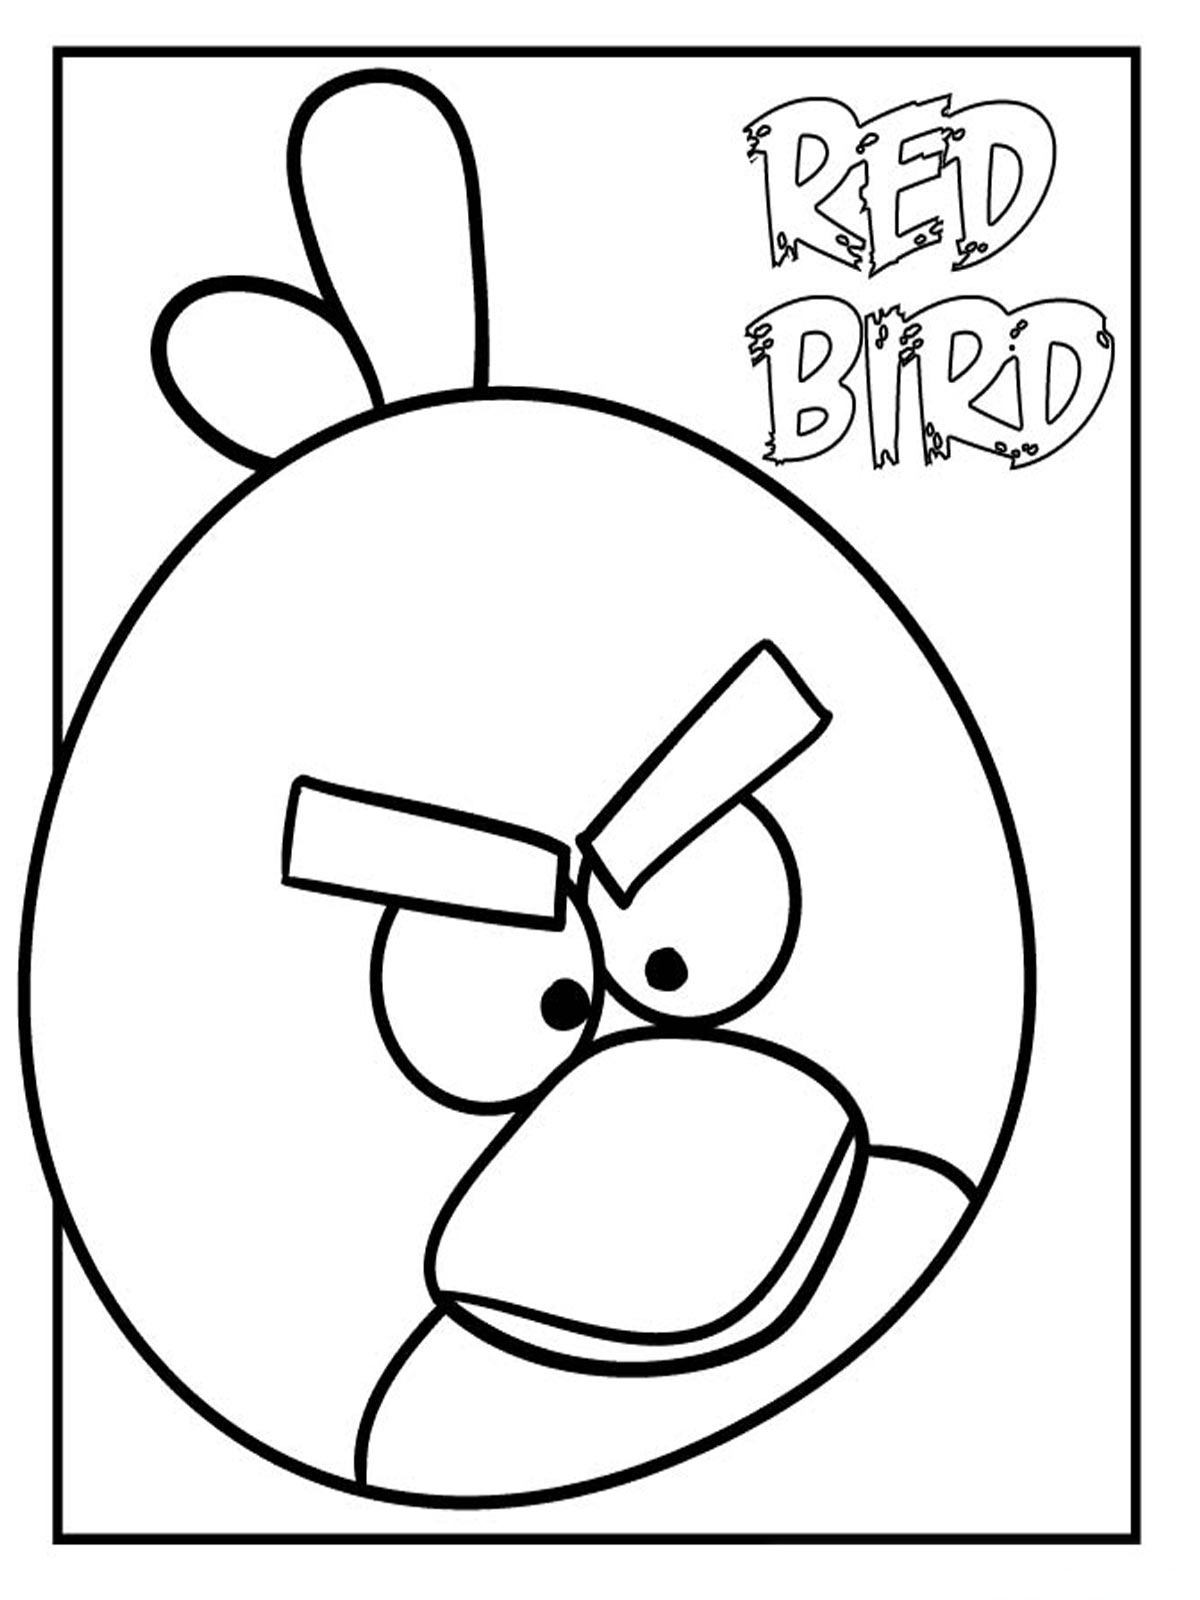 angry birds printable coloring pages angry bird terence coloring page coloring home coloring angry printable birds pages